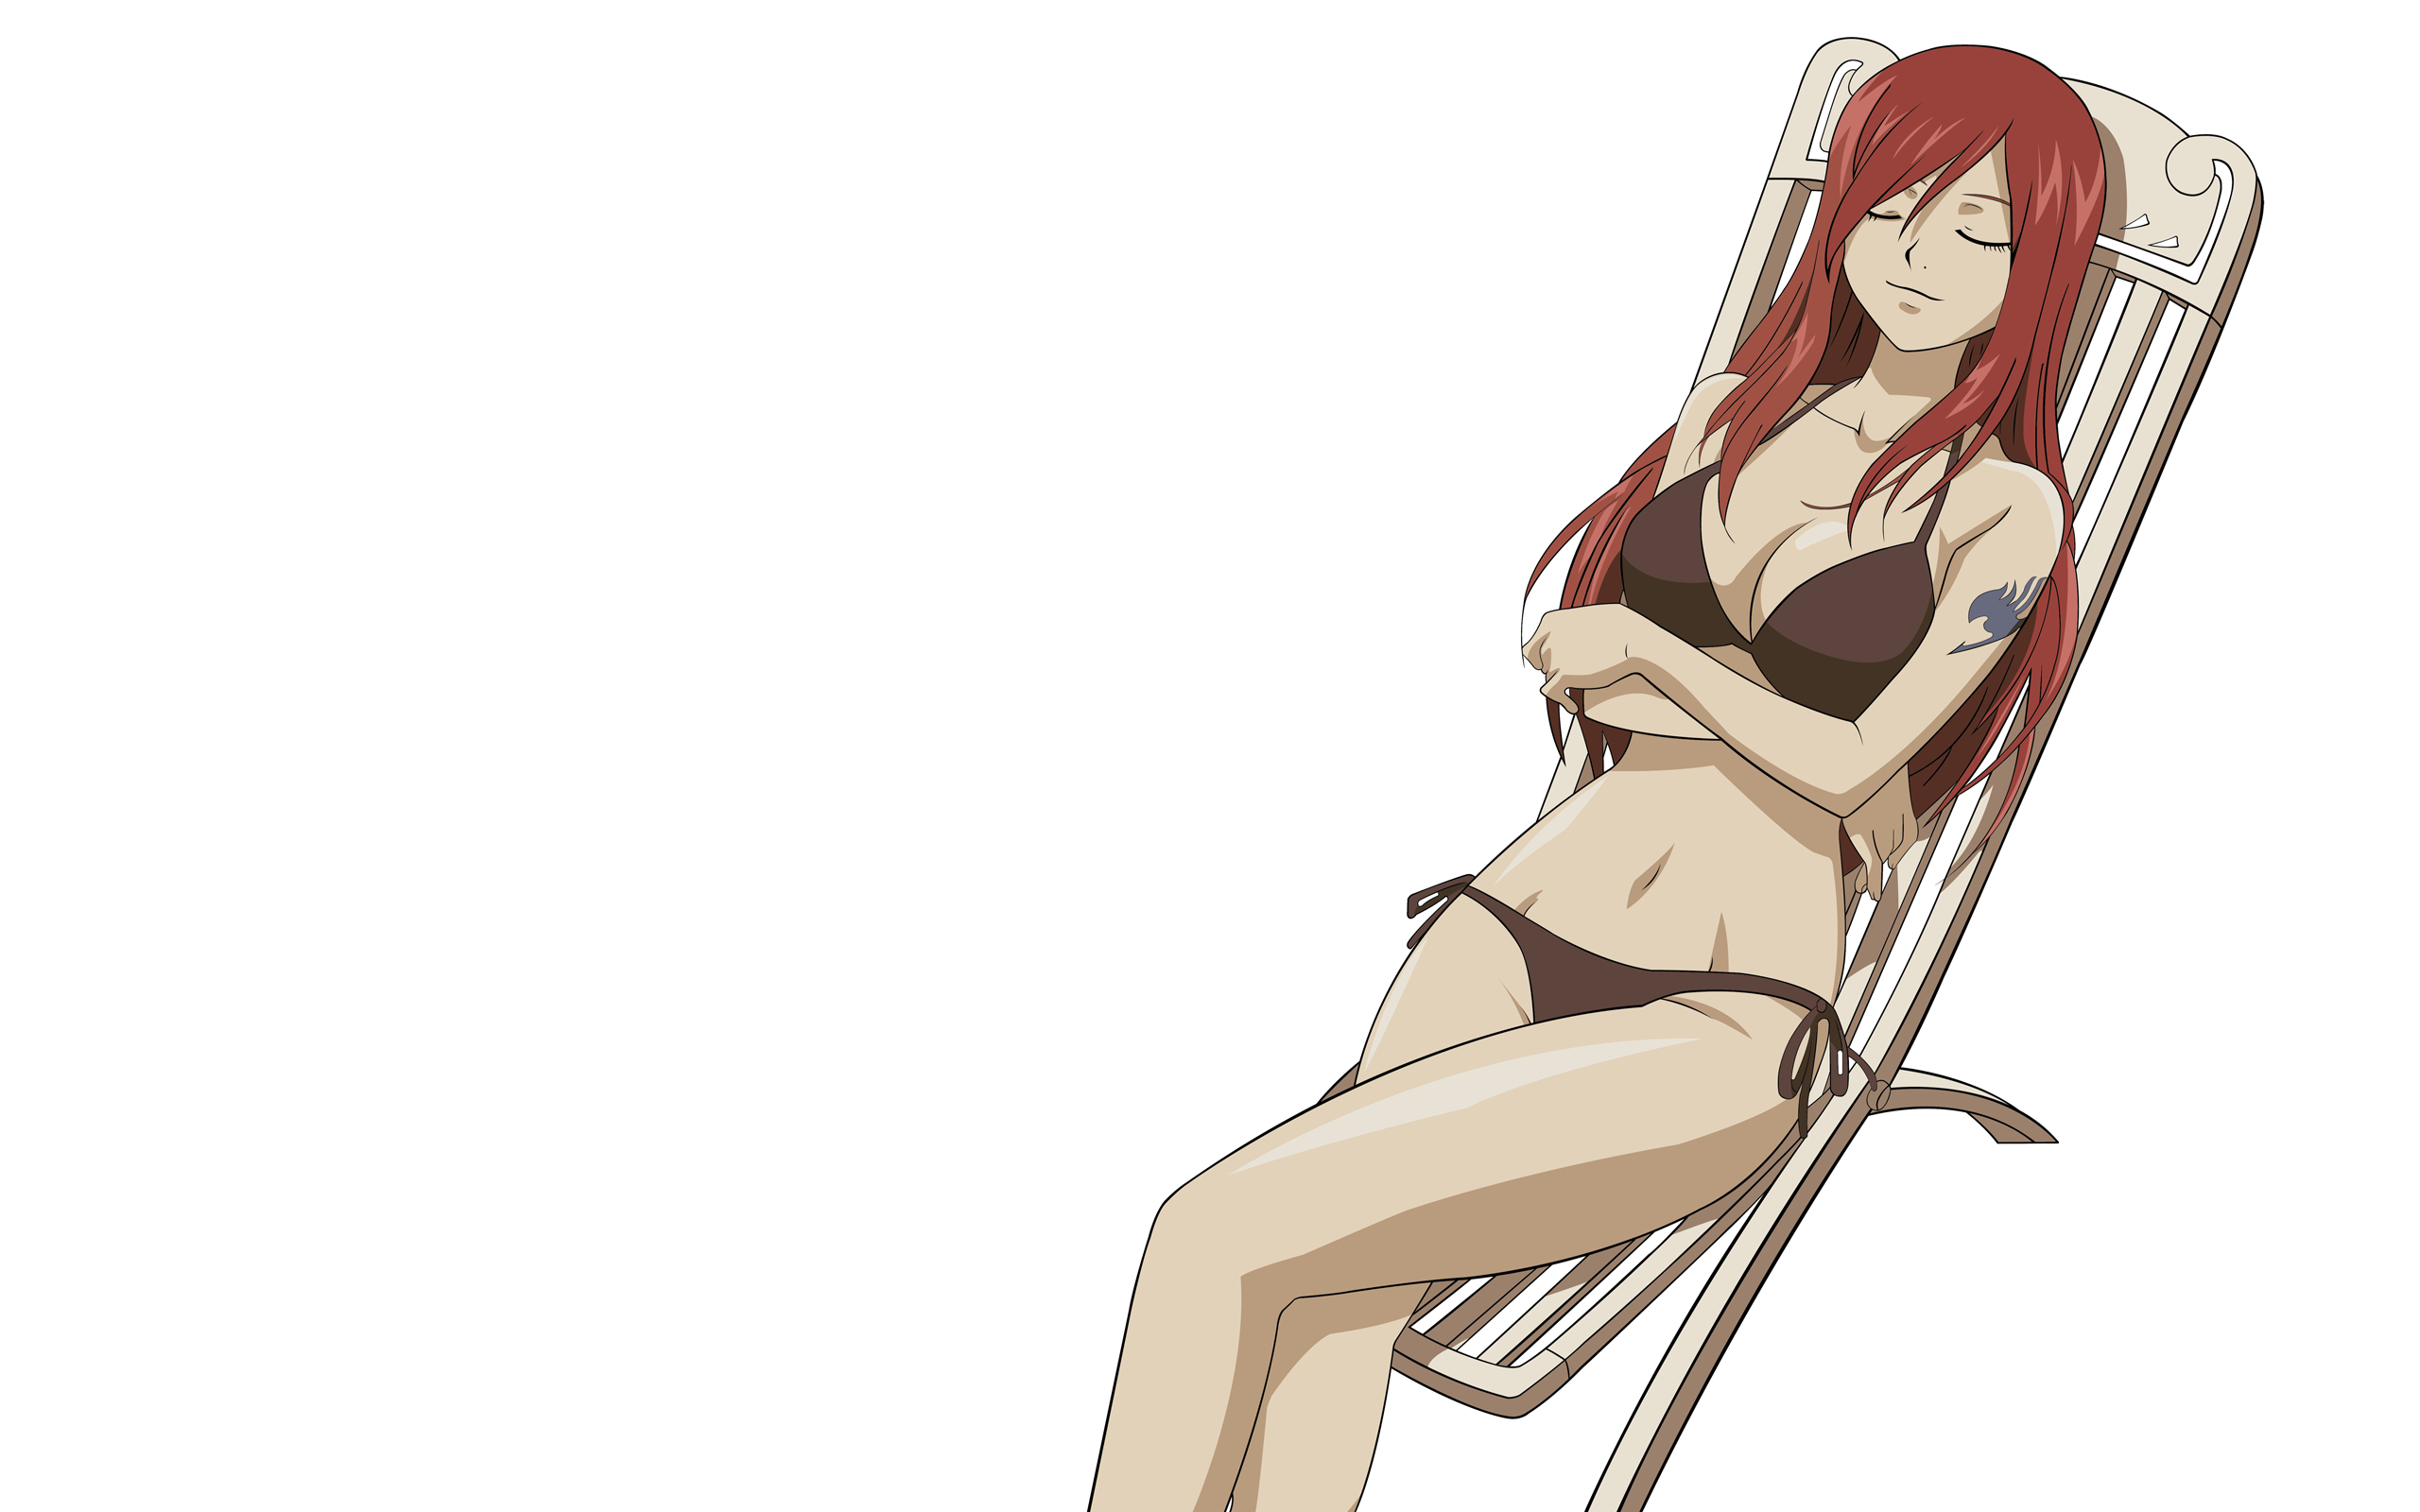 panties redheads bra long HD Wallpaper